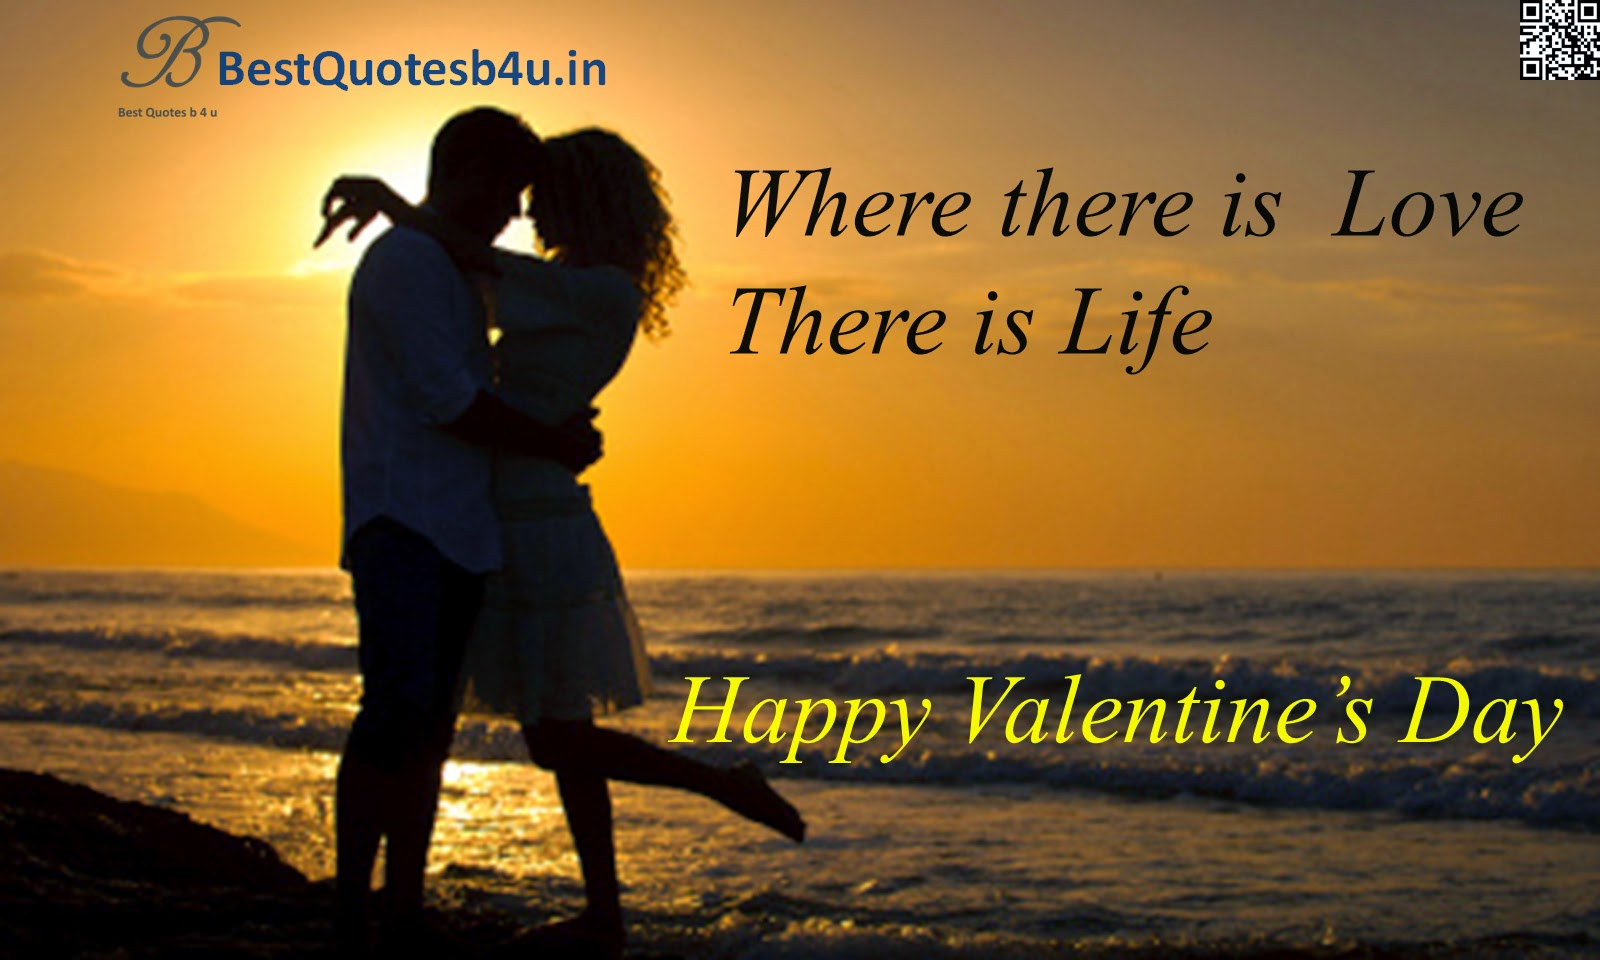 Valentine's Day Love Quotes Greetings Wishes HD Wallpapers